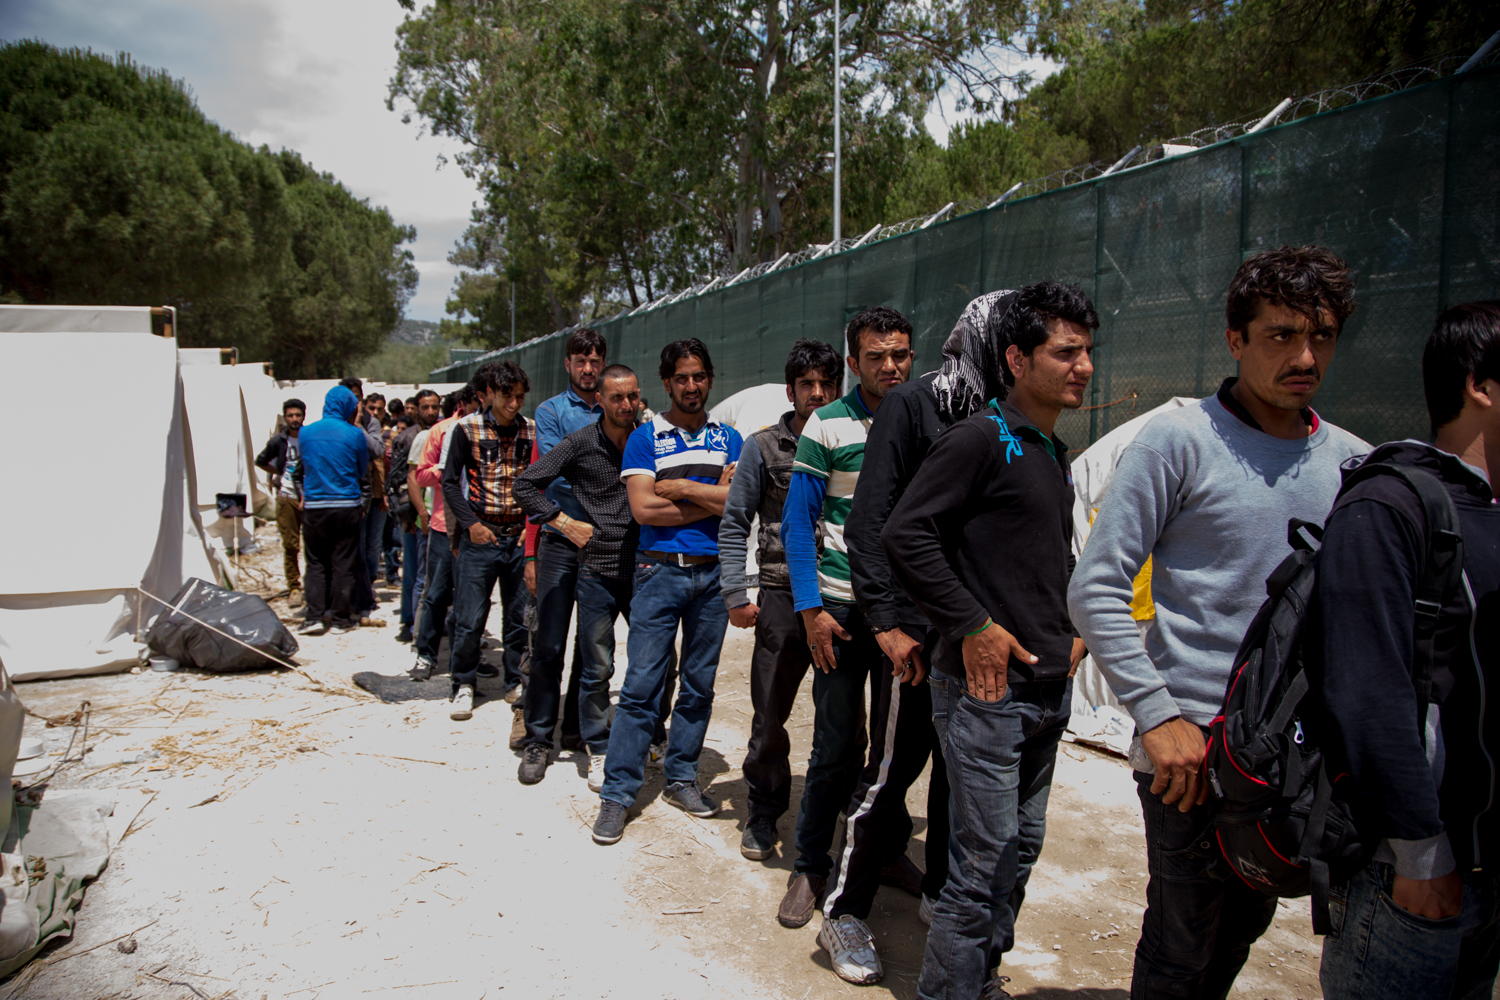 Migrants queue for tea at Moria detention centre